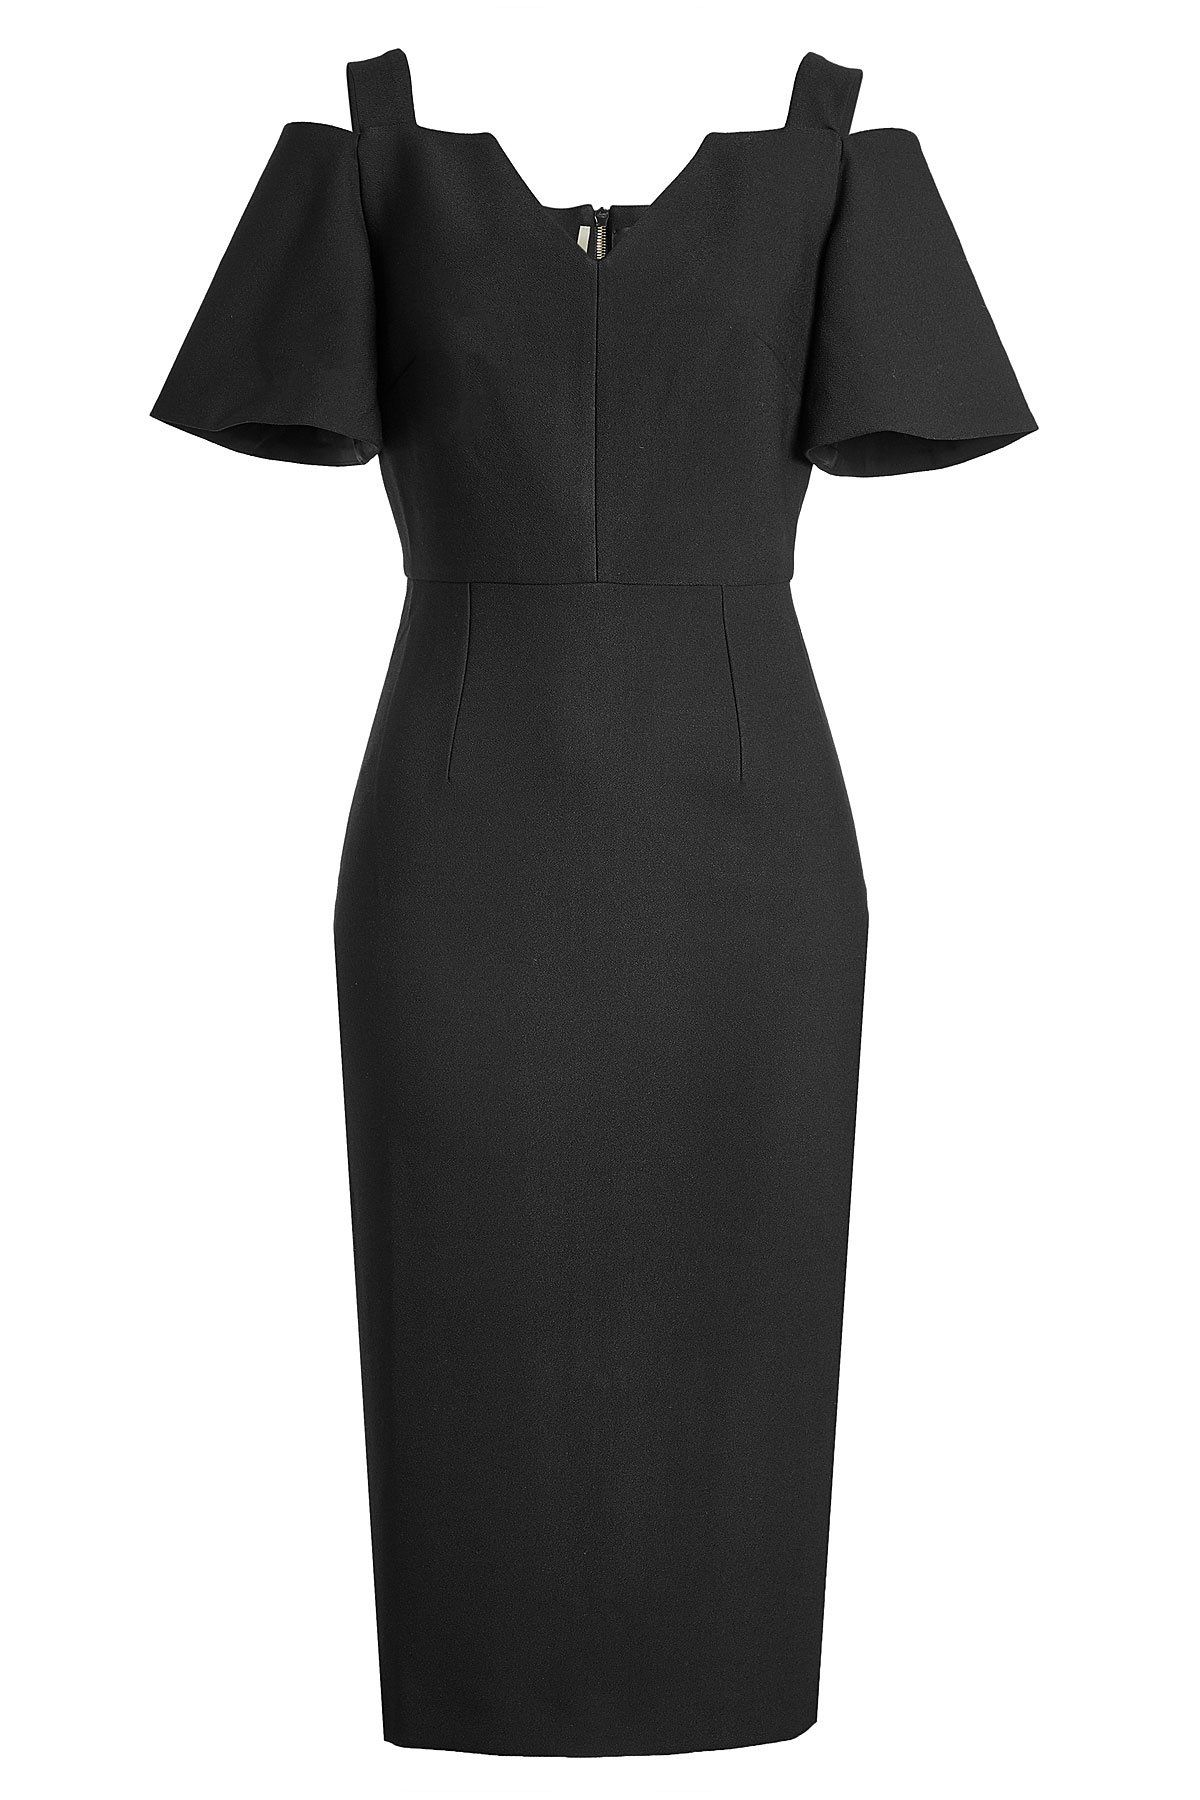 4cada9762650 Roland Mouret Tailored Dress with Cut-Out Shoulders